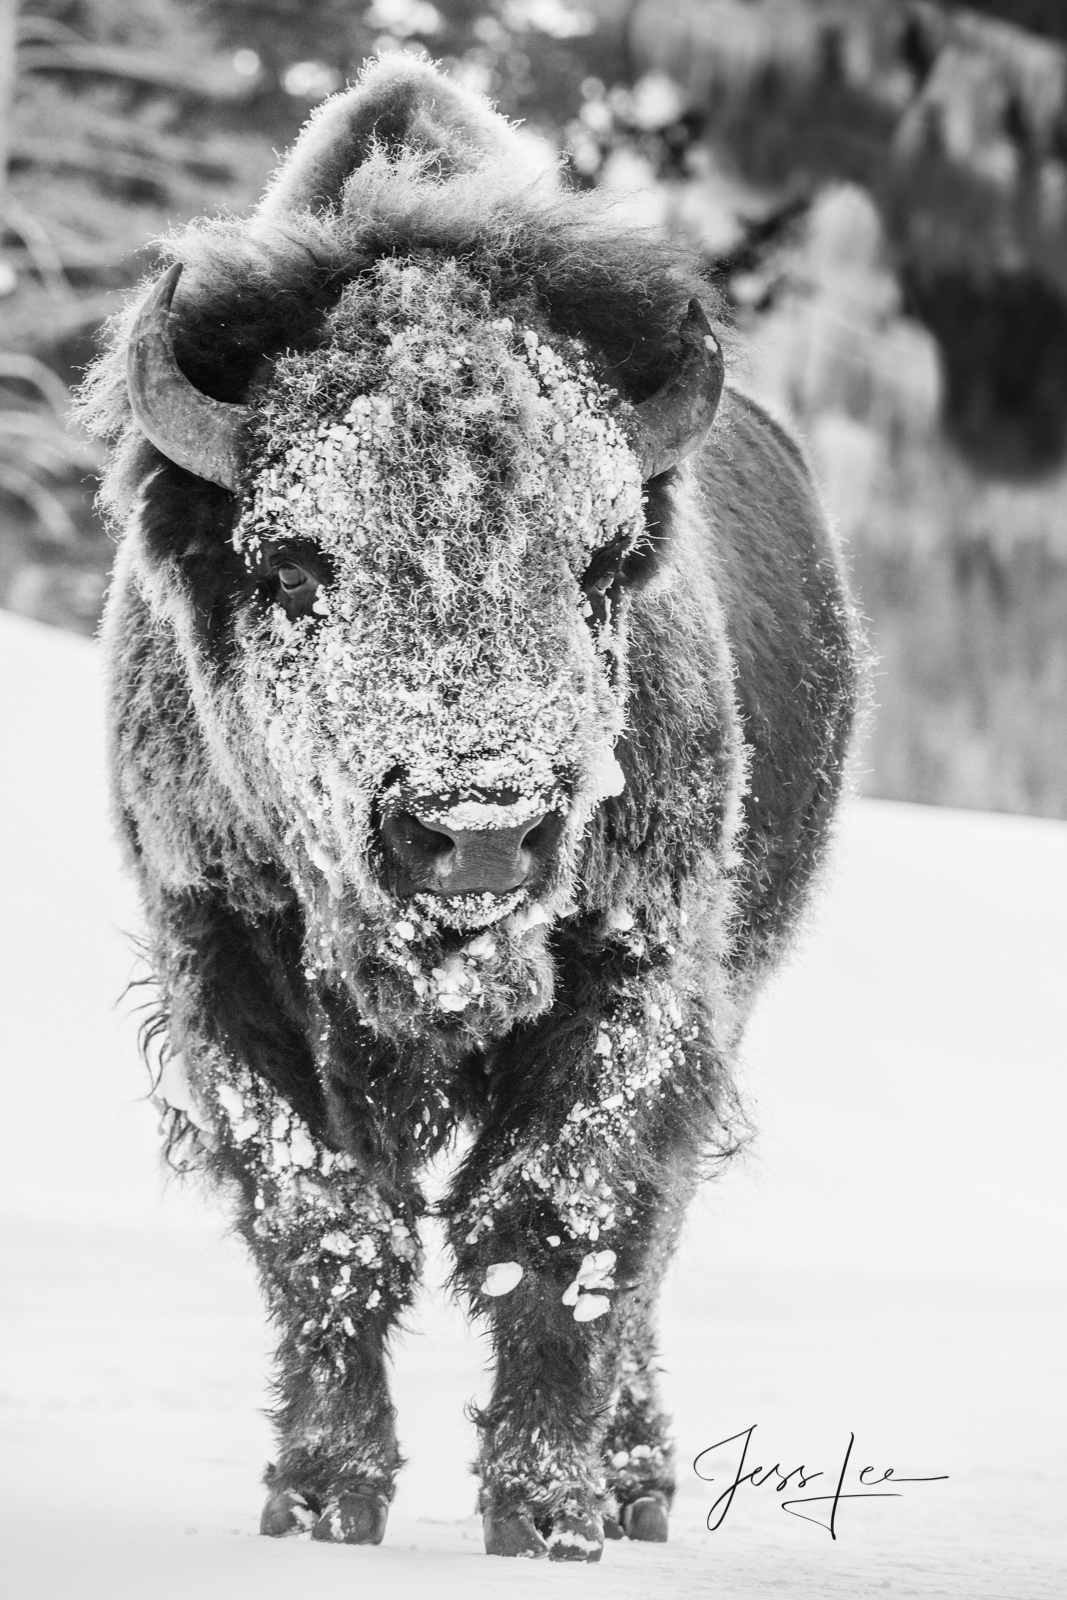 Bison in Winter  Fine Art Frost Covered Buffalo Print.  Limited Edition 200 prints. Sizes and presentation options below. Copyright...